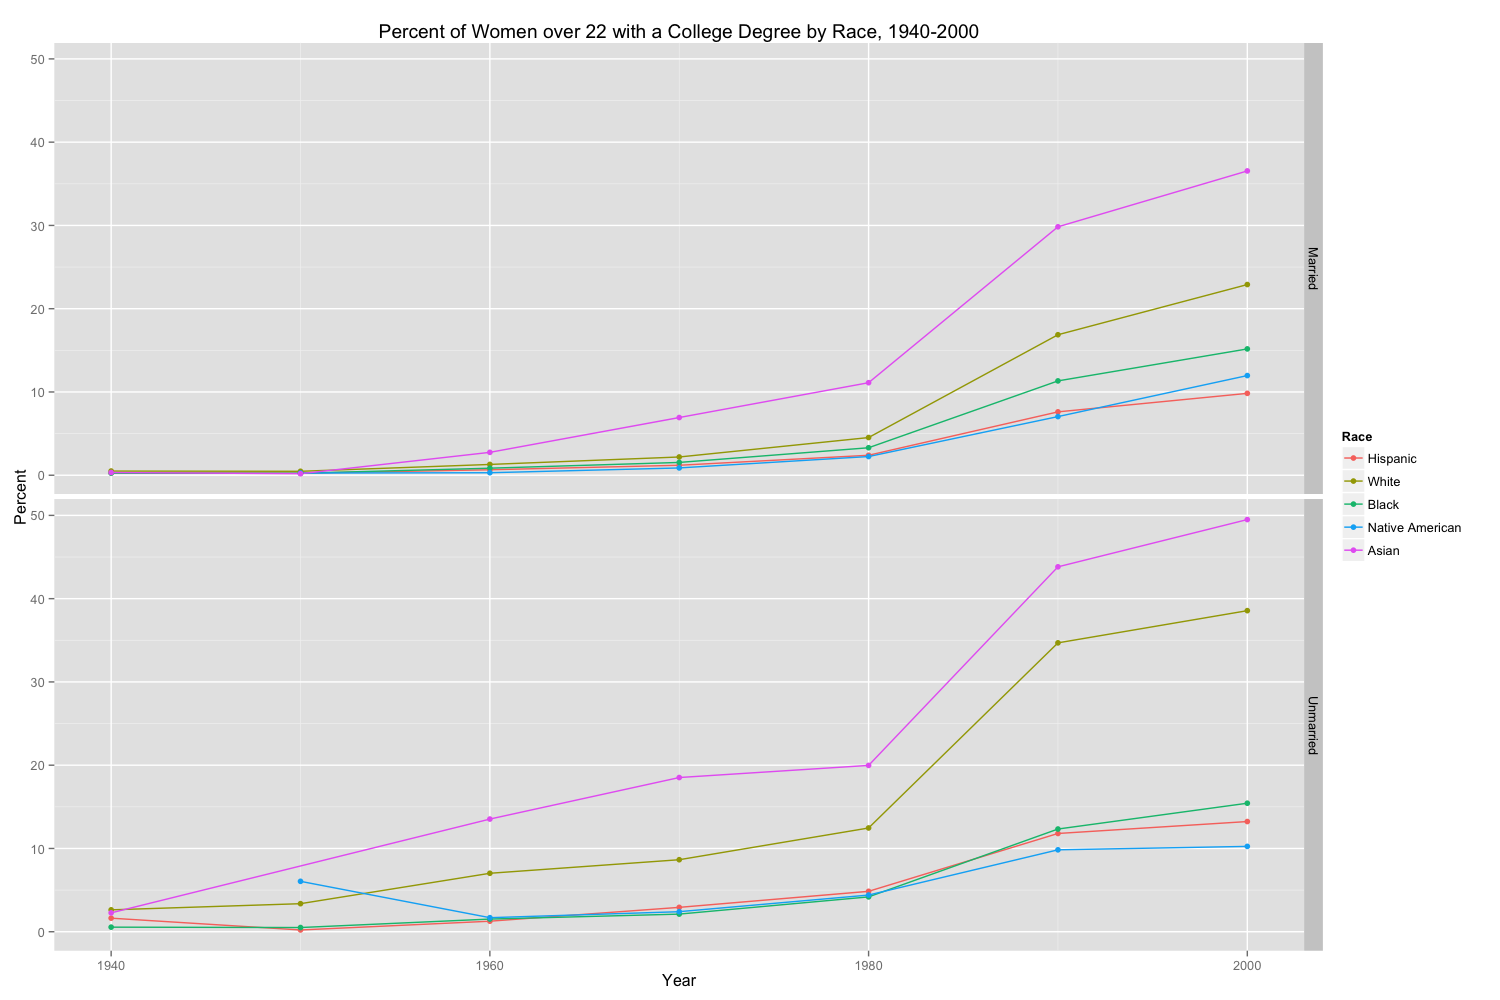 Figure 1 - Percent of Women over 22 with a College Degree by Race, 1940-2000